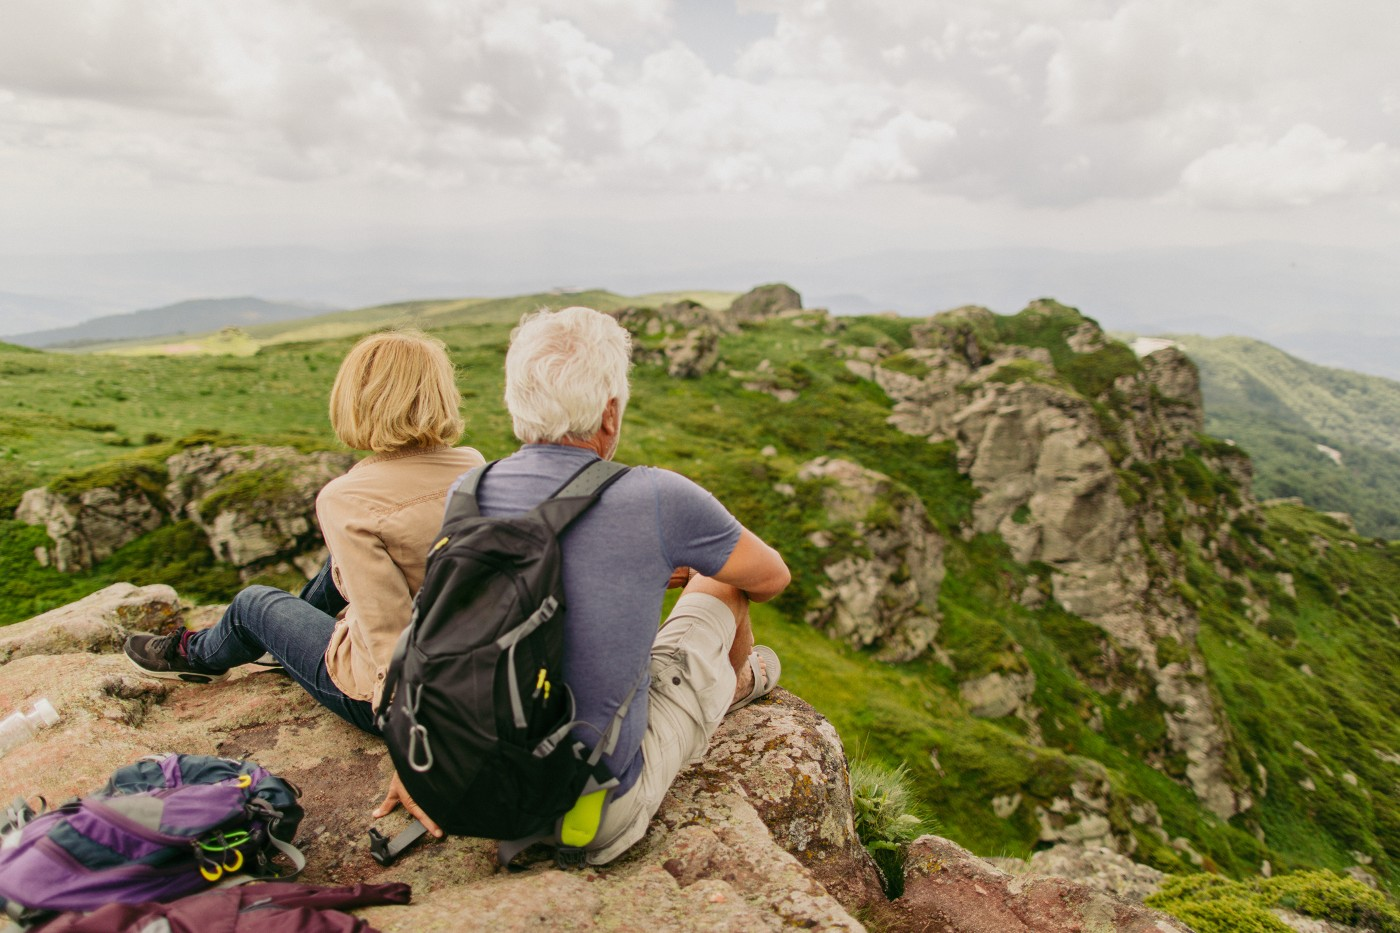 https://tickertapecdn.tdameritrade.com/assets/images/pages/md/Older woman and man on a hike: Careful planning to achieve retirement dreams